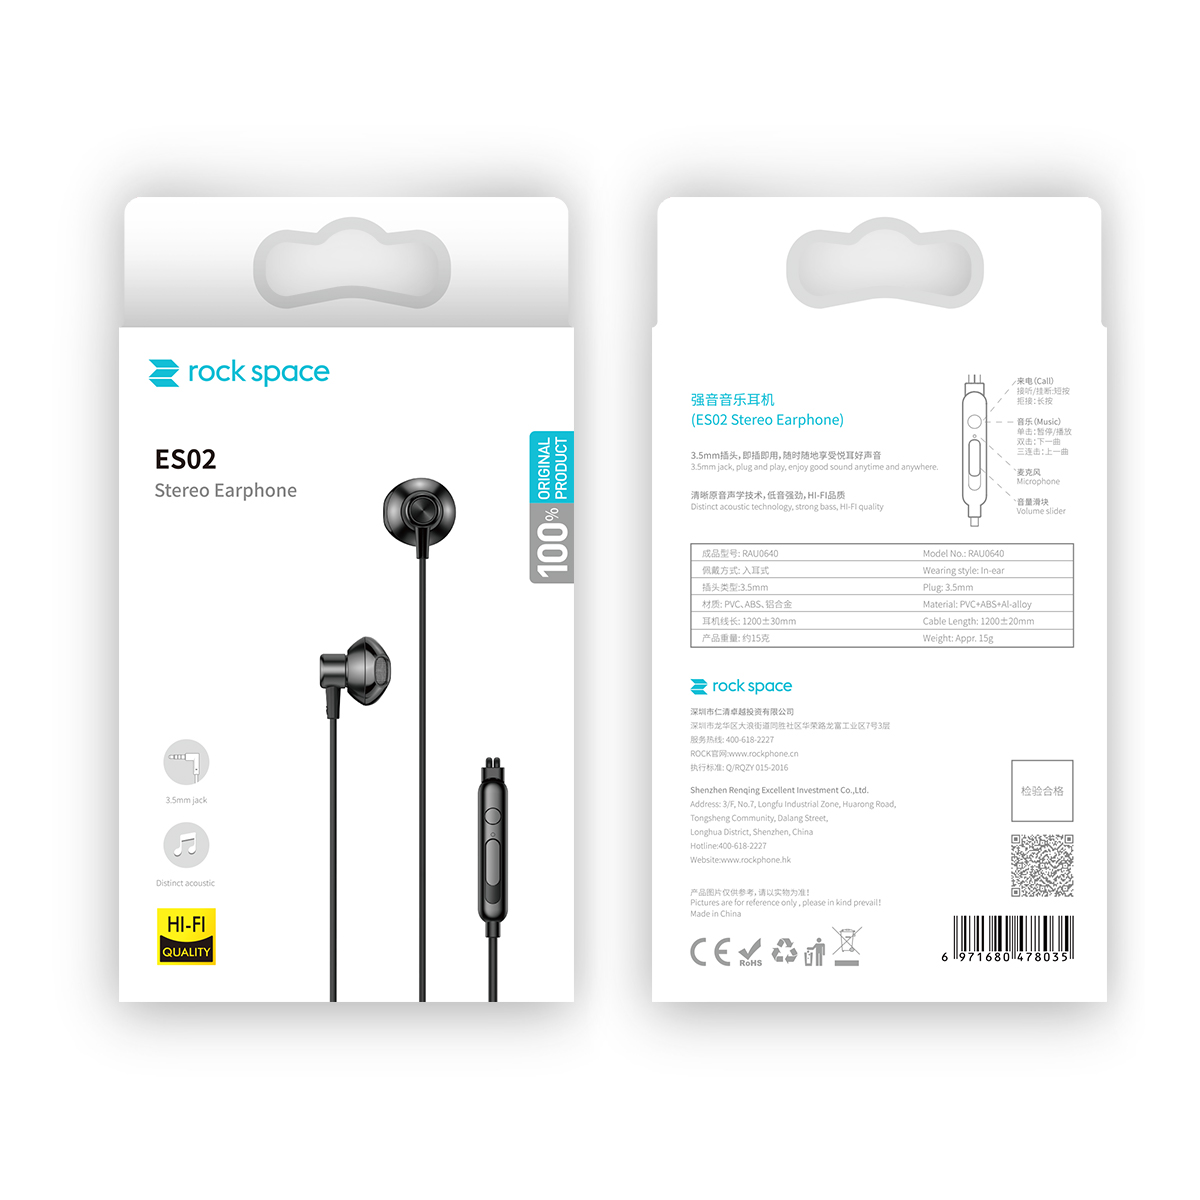 REGO Communication Sdn Bhd - Rock Space | rock space ES02 Stereo Earphone